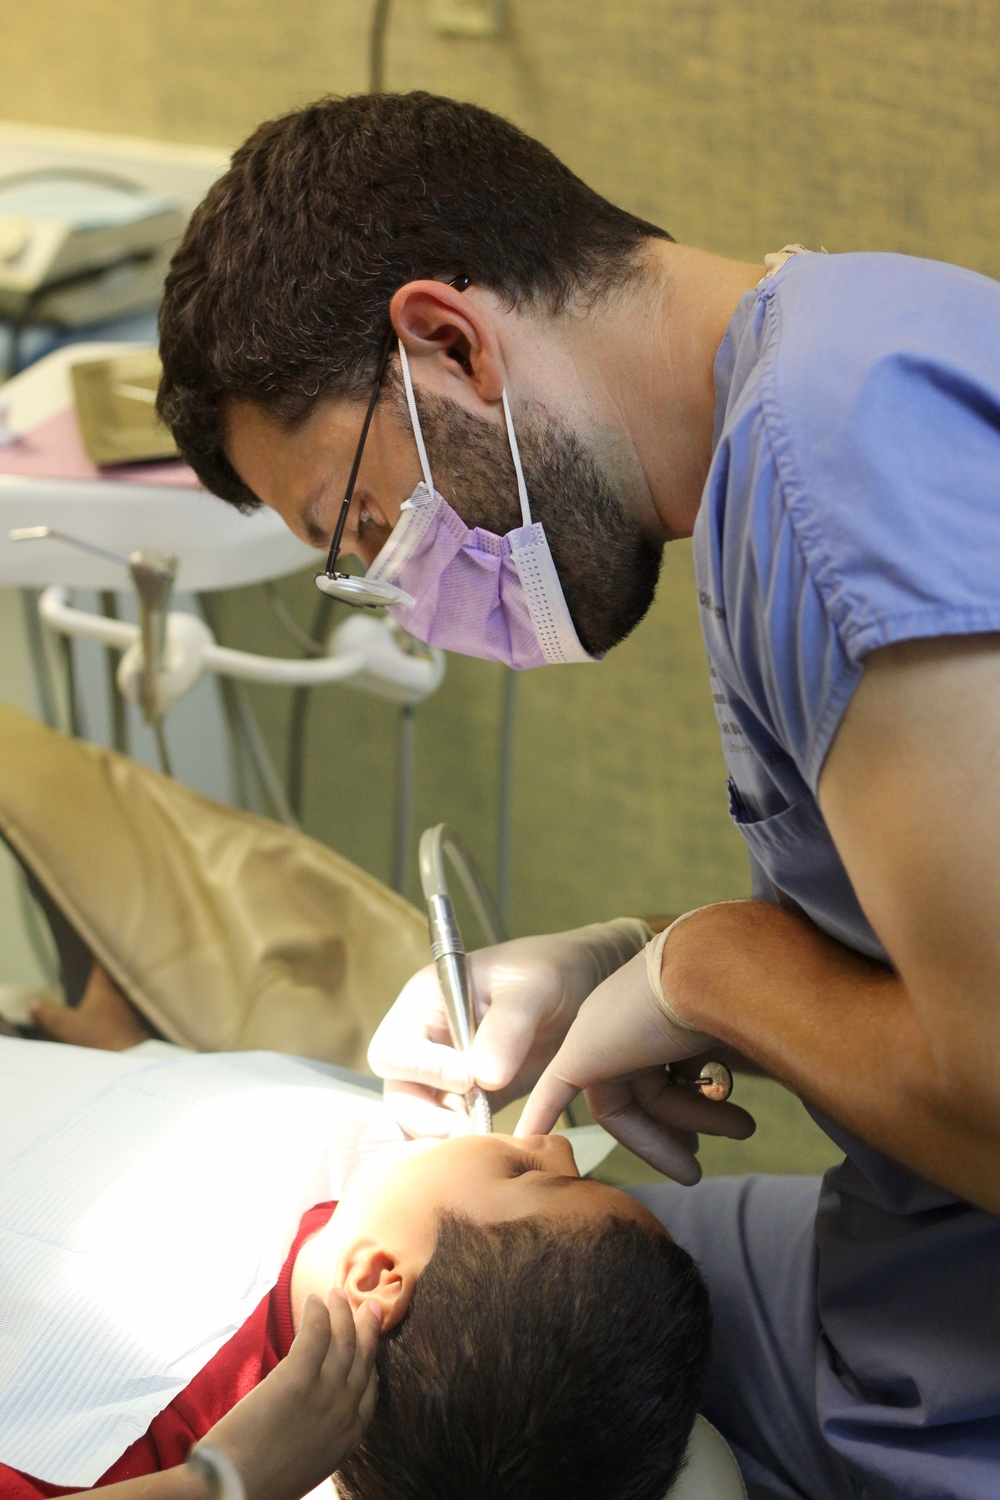 Dr. Ryan Colosi working on teeth.